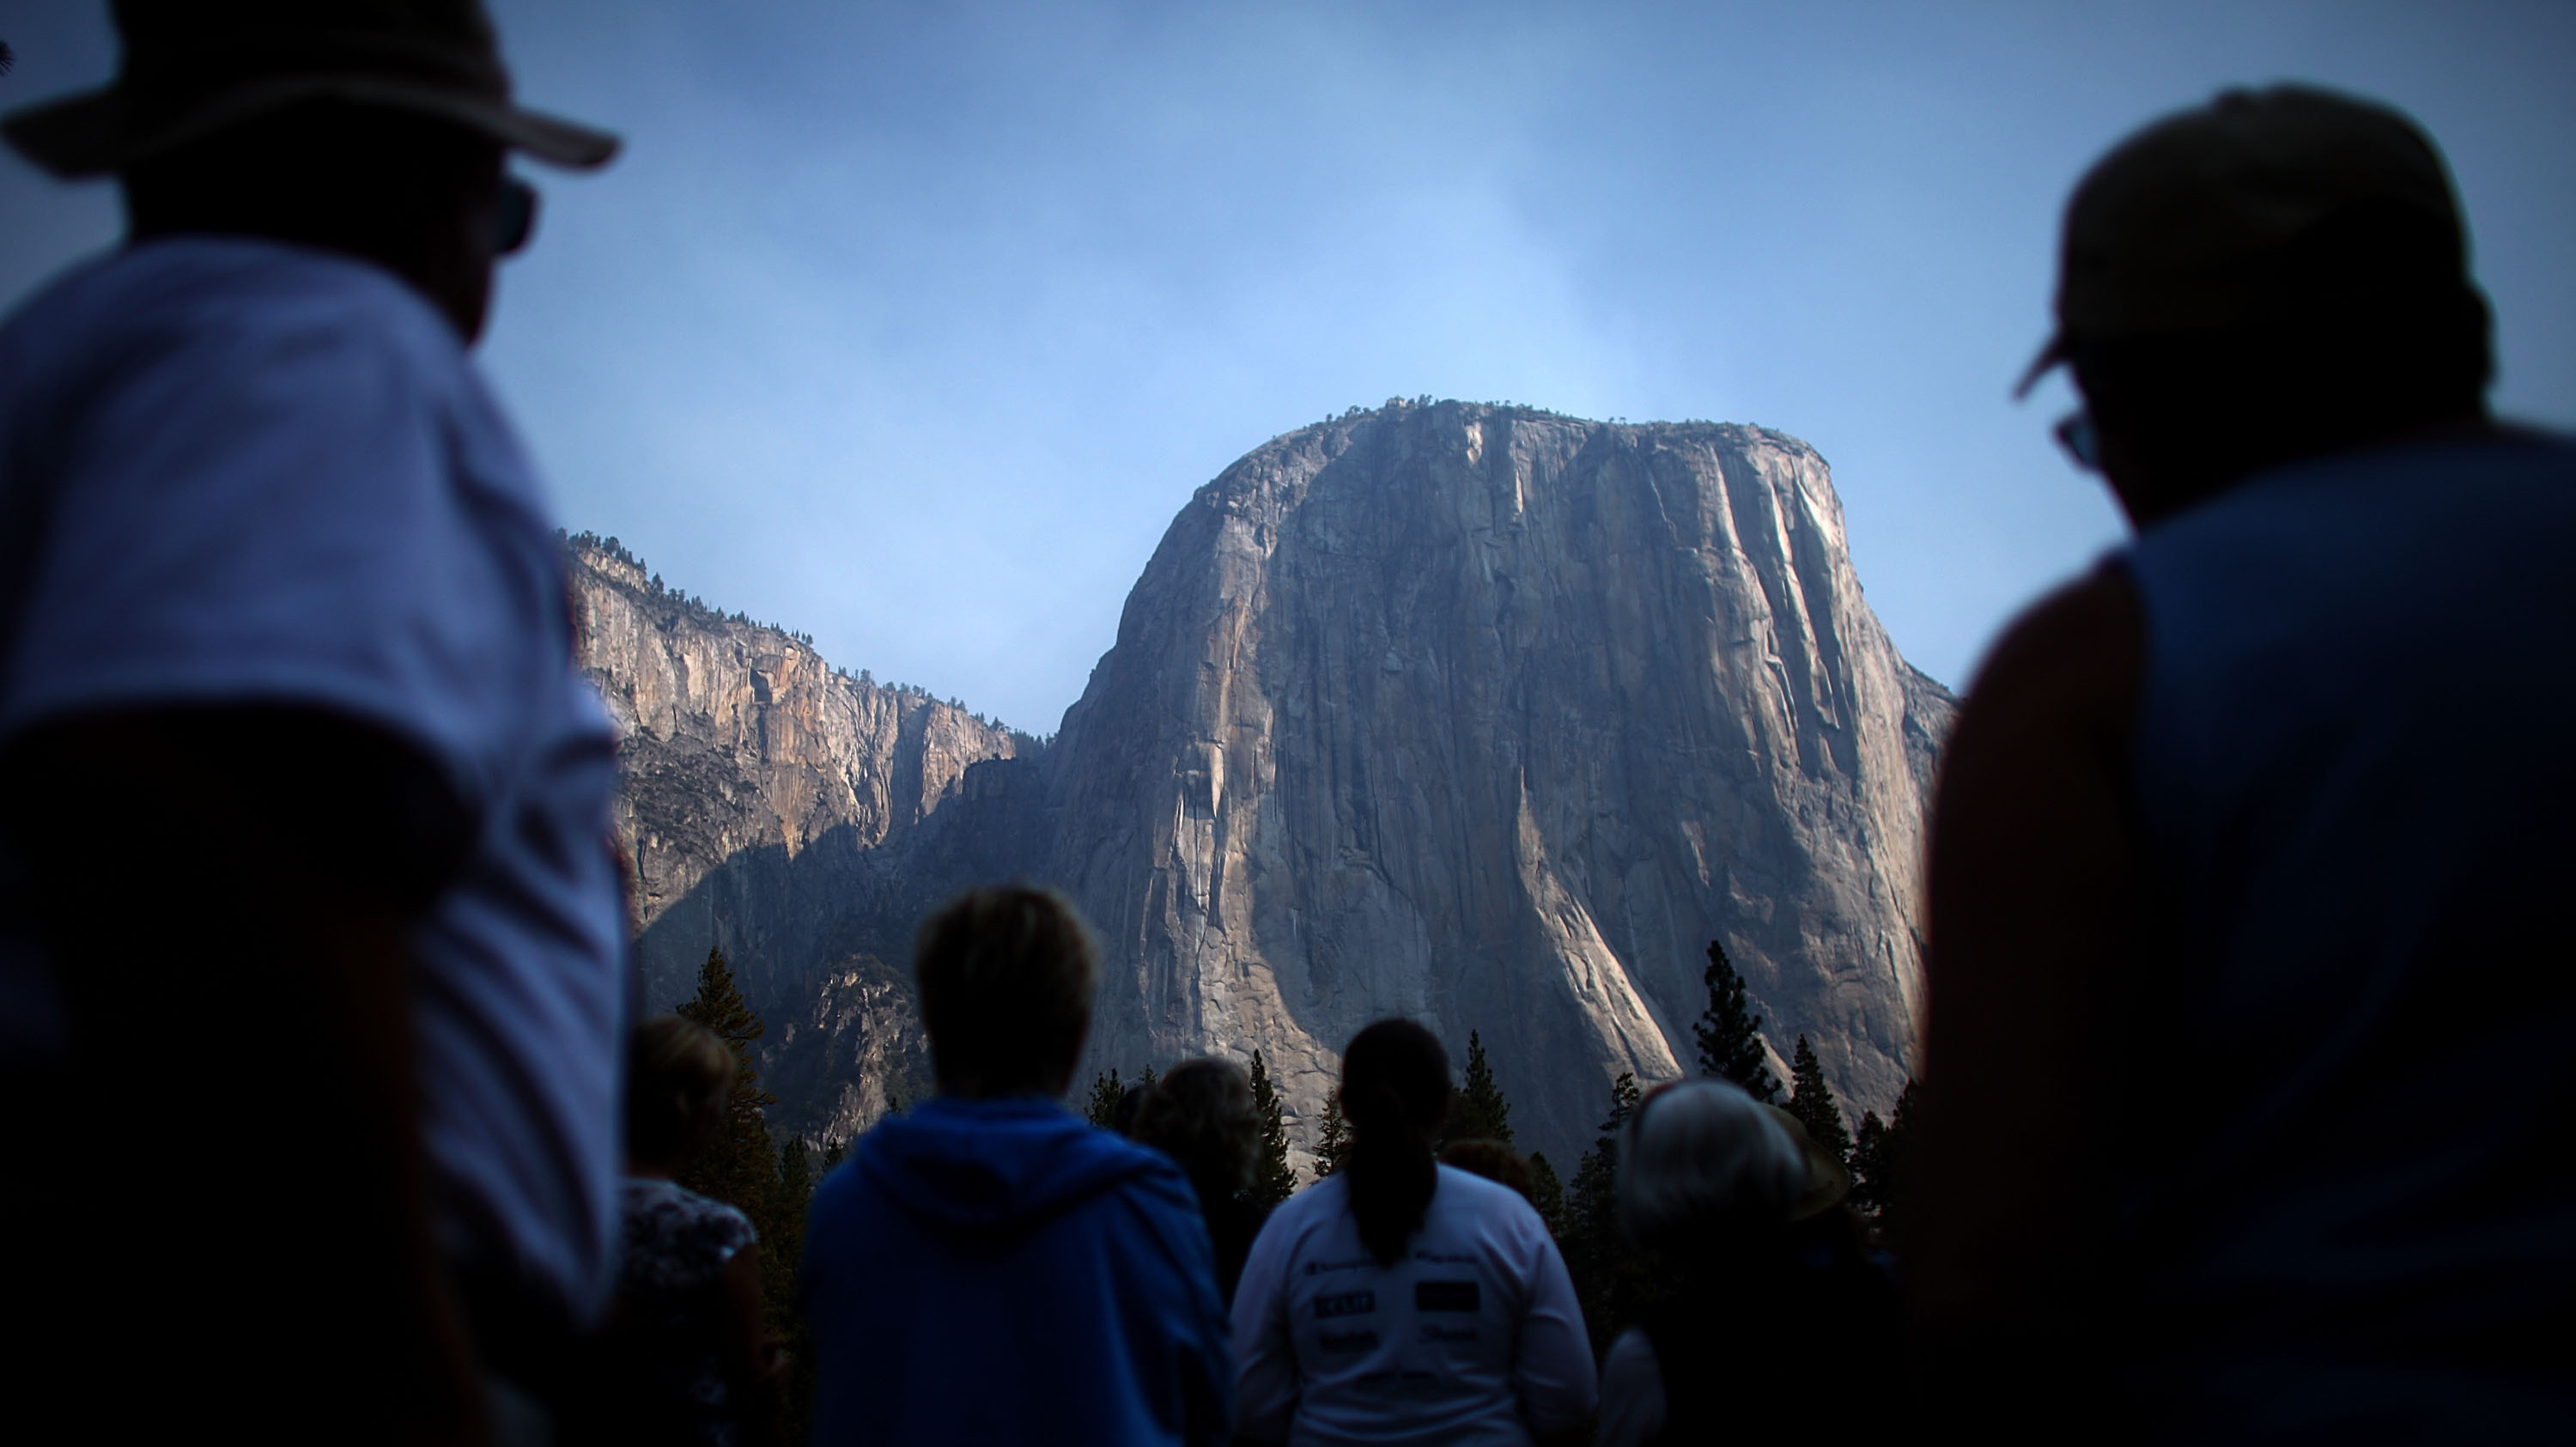 Tourists look up at the world famous El Capitan in Yosemite National Park. Military veterans with the adaptive rock-climbing group Paradox Sports summited two peaks in the park to mark the September 11th anniversary: El Captain and Half Dome.